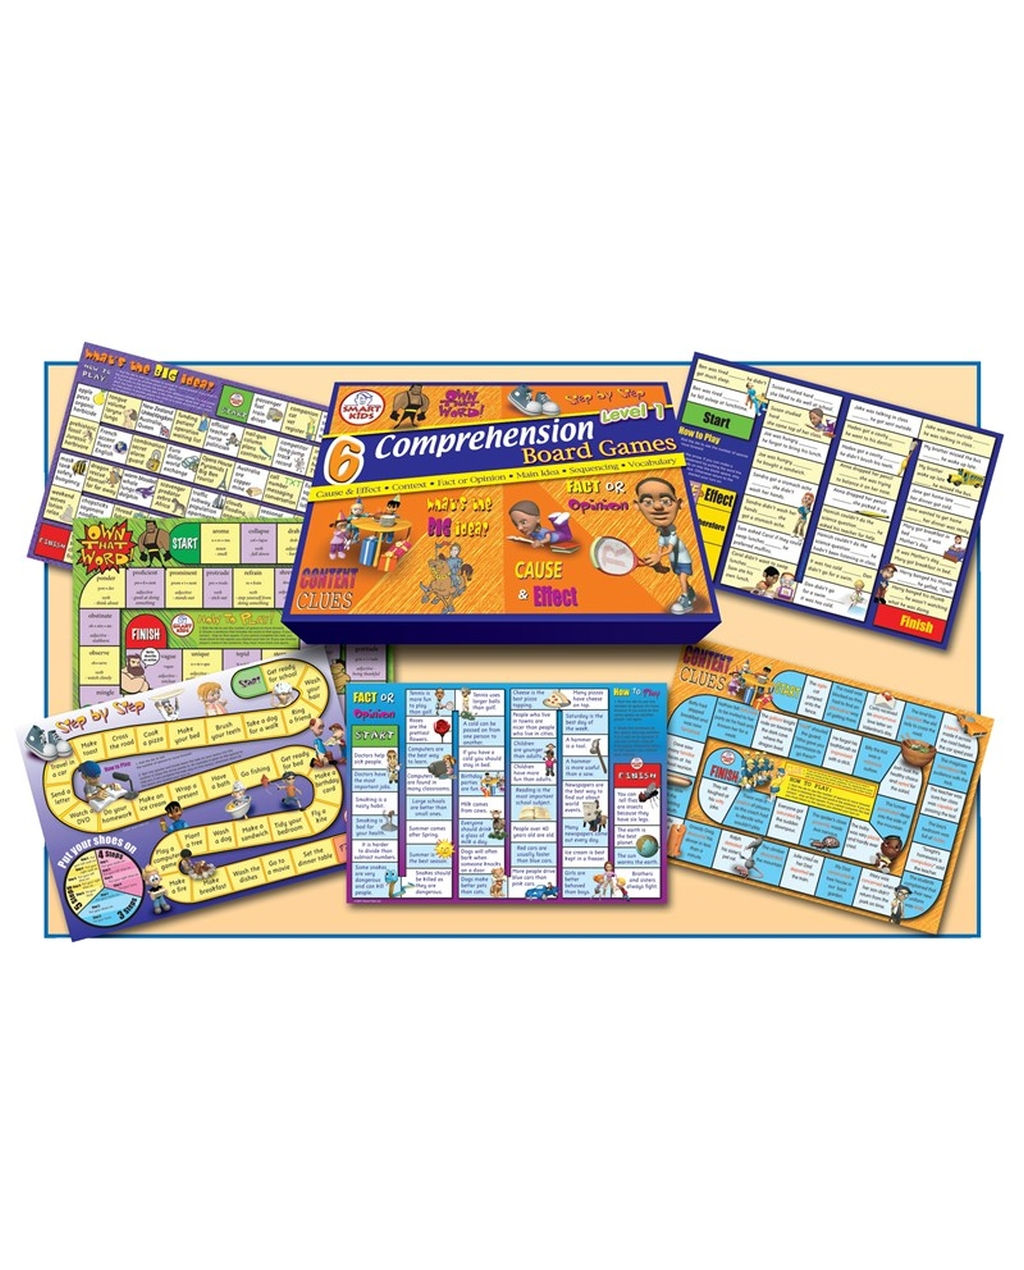 6 Comprehension Games Level 1